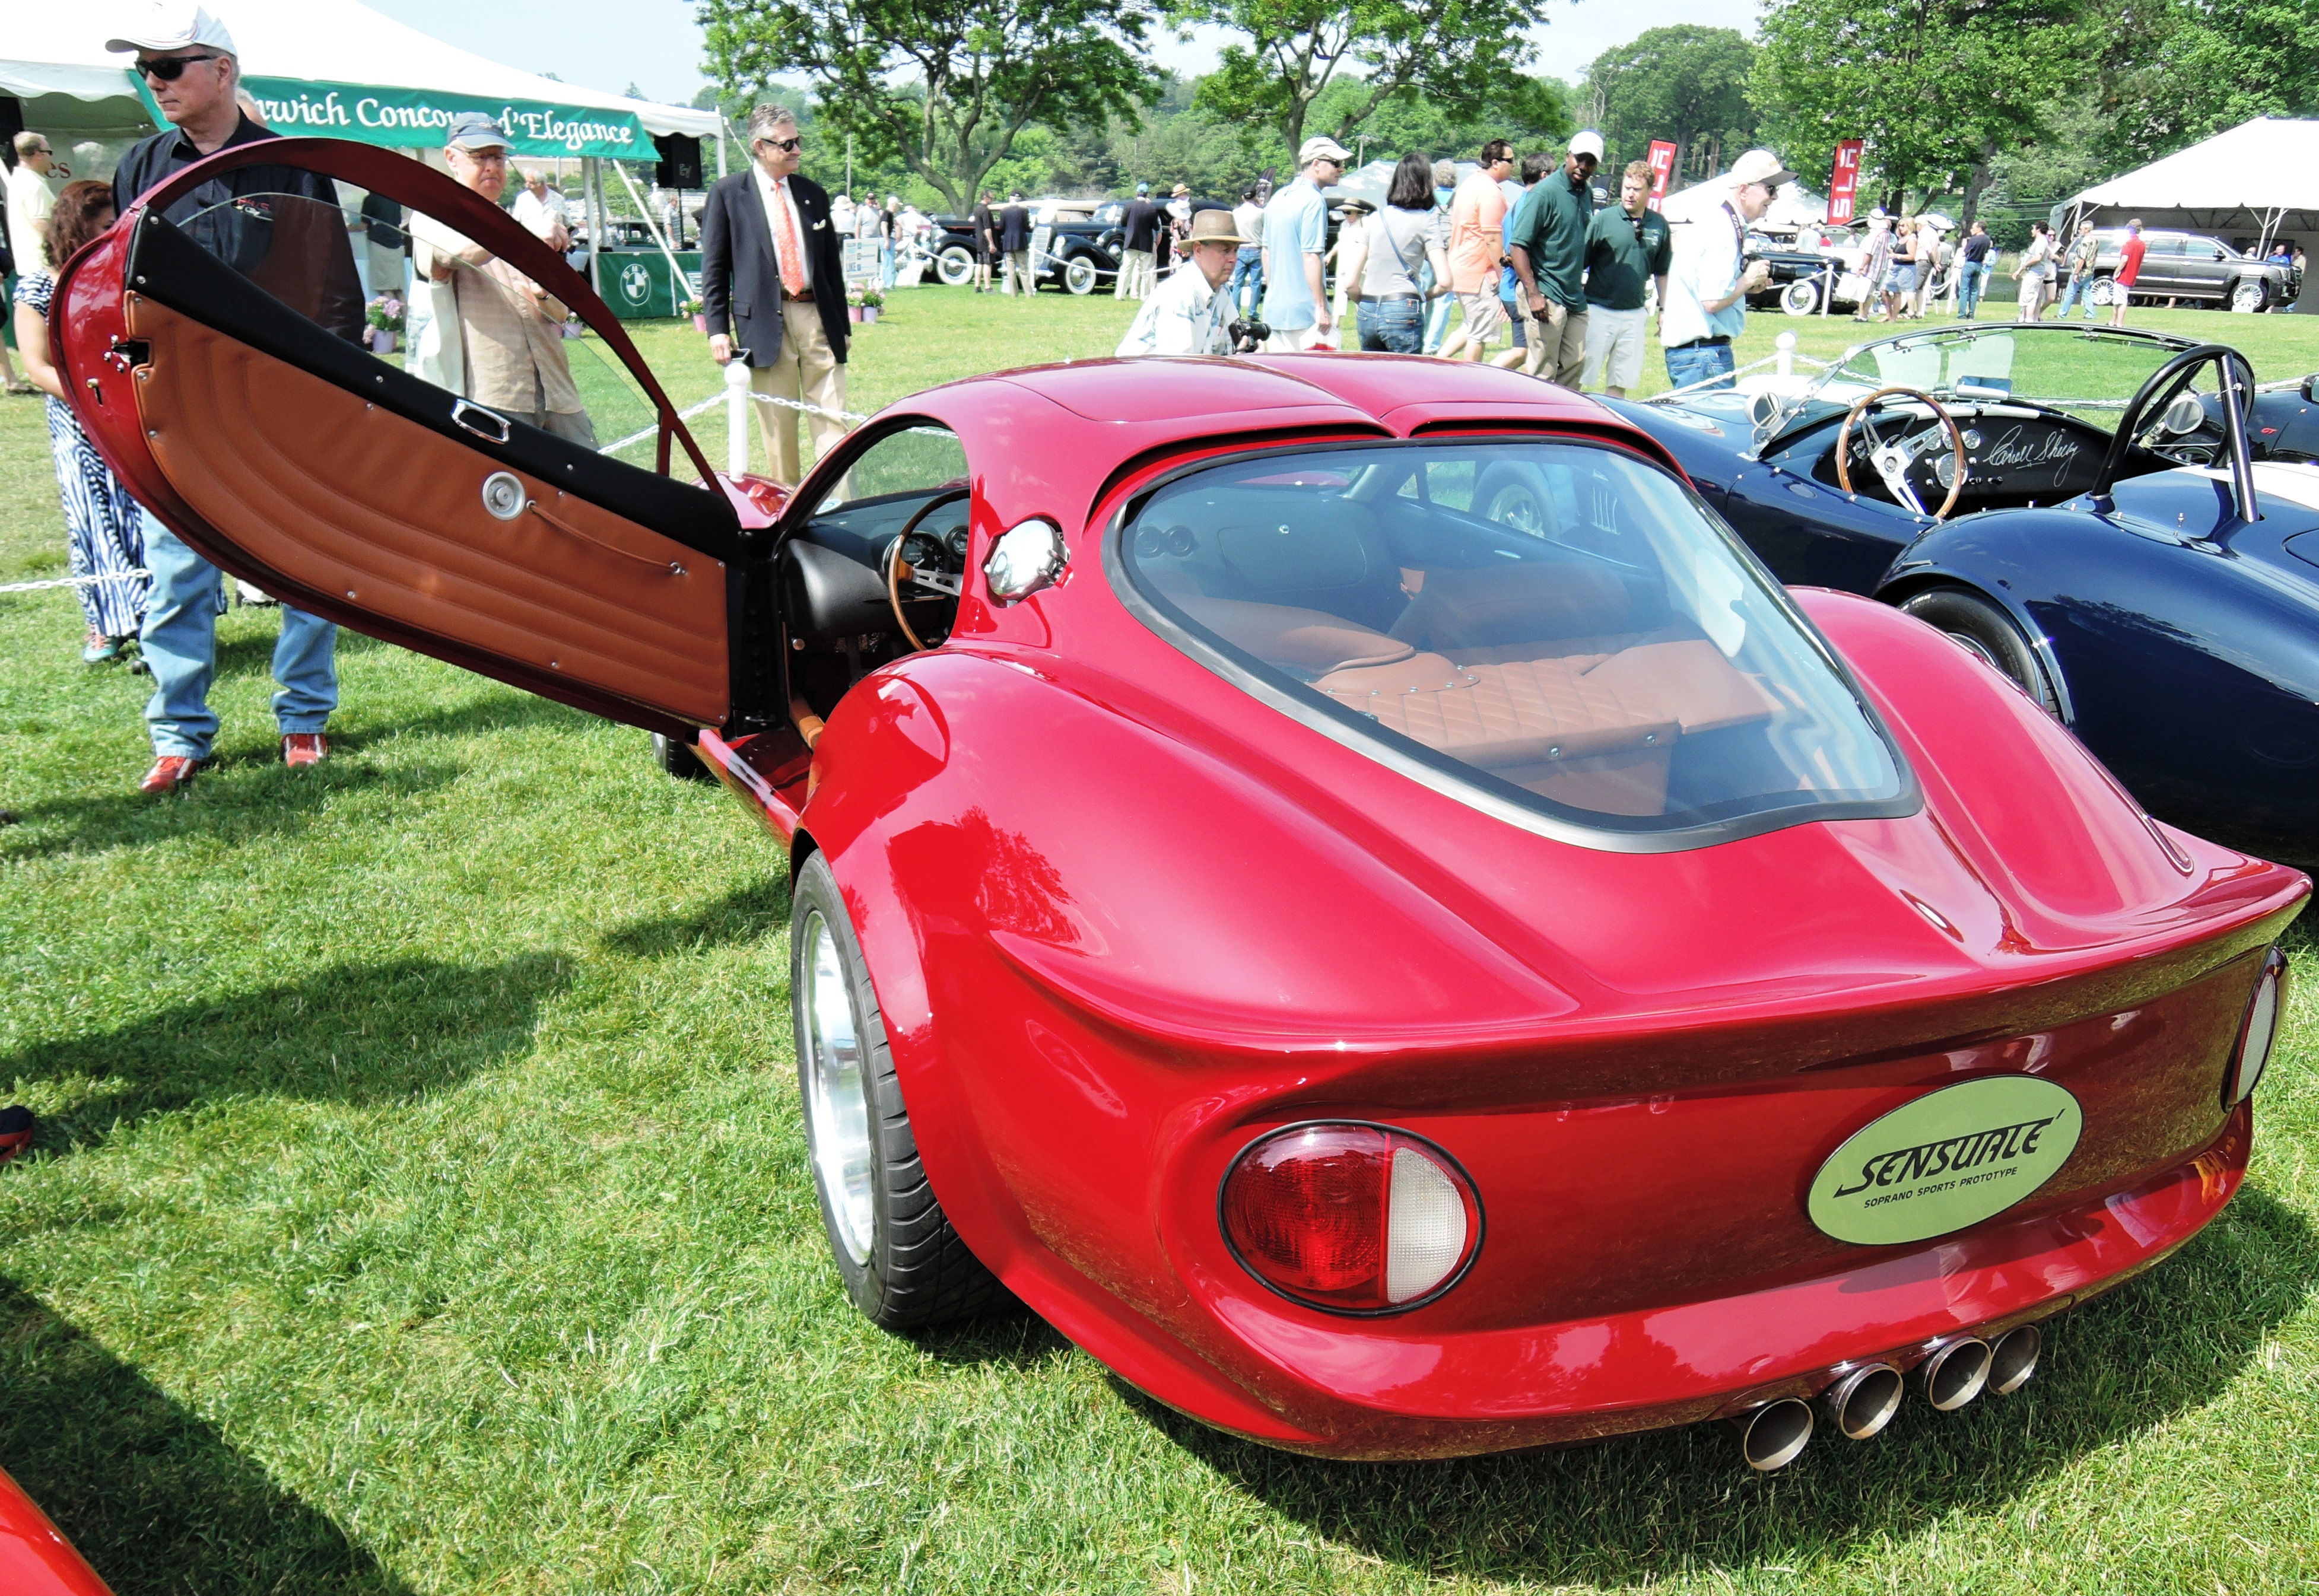 red 1965 Sensuale Super Spyder - greenwich concours